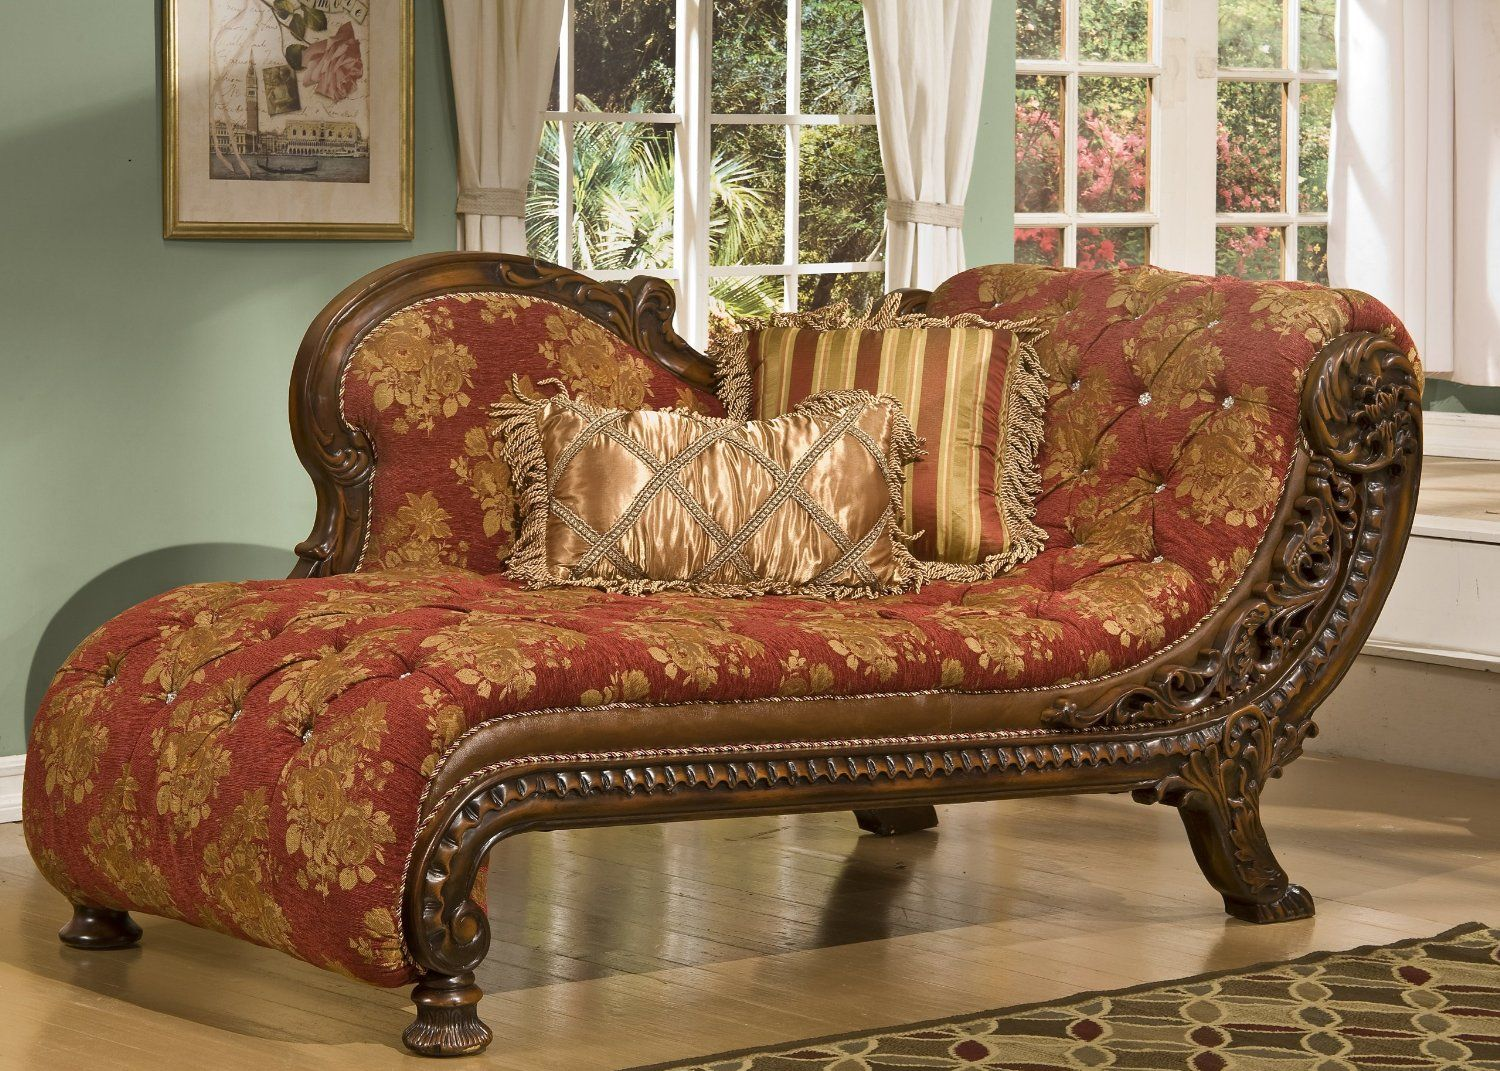 Bedroom Chaise Lounge  Delightfulbedroomchaiselonguechairs Pleasing Bedroom Chaise Lounge Chairs Inspiration